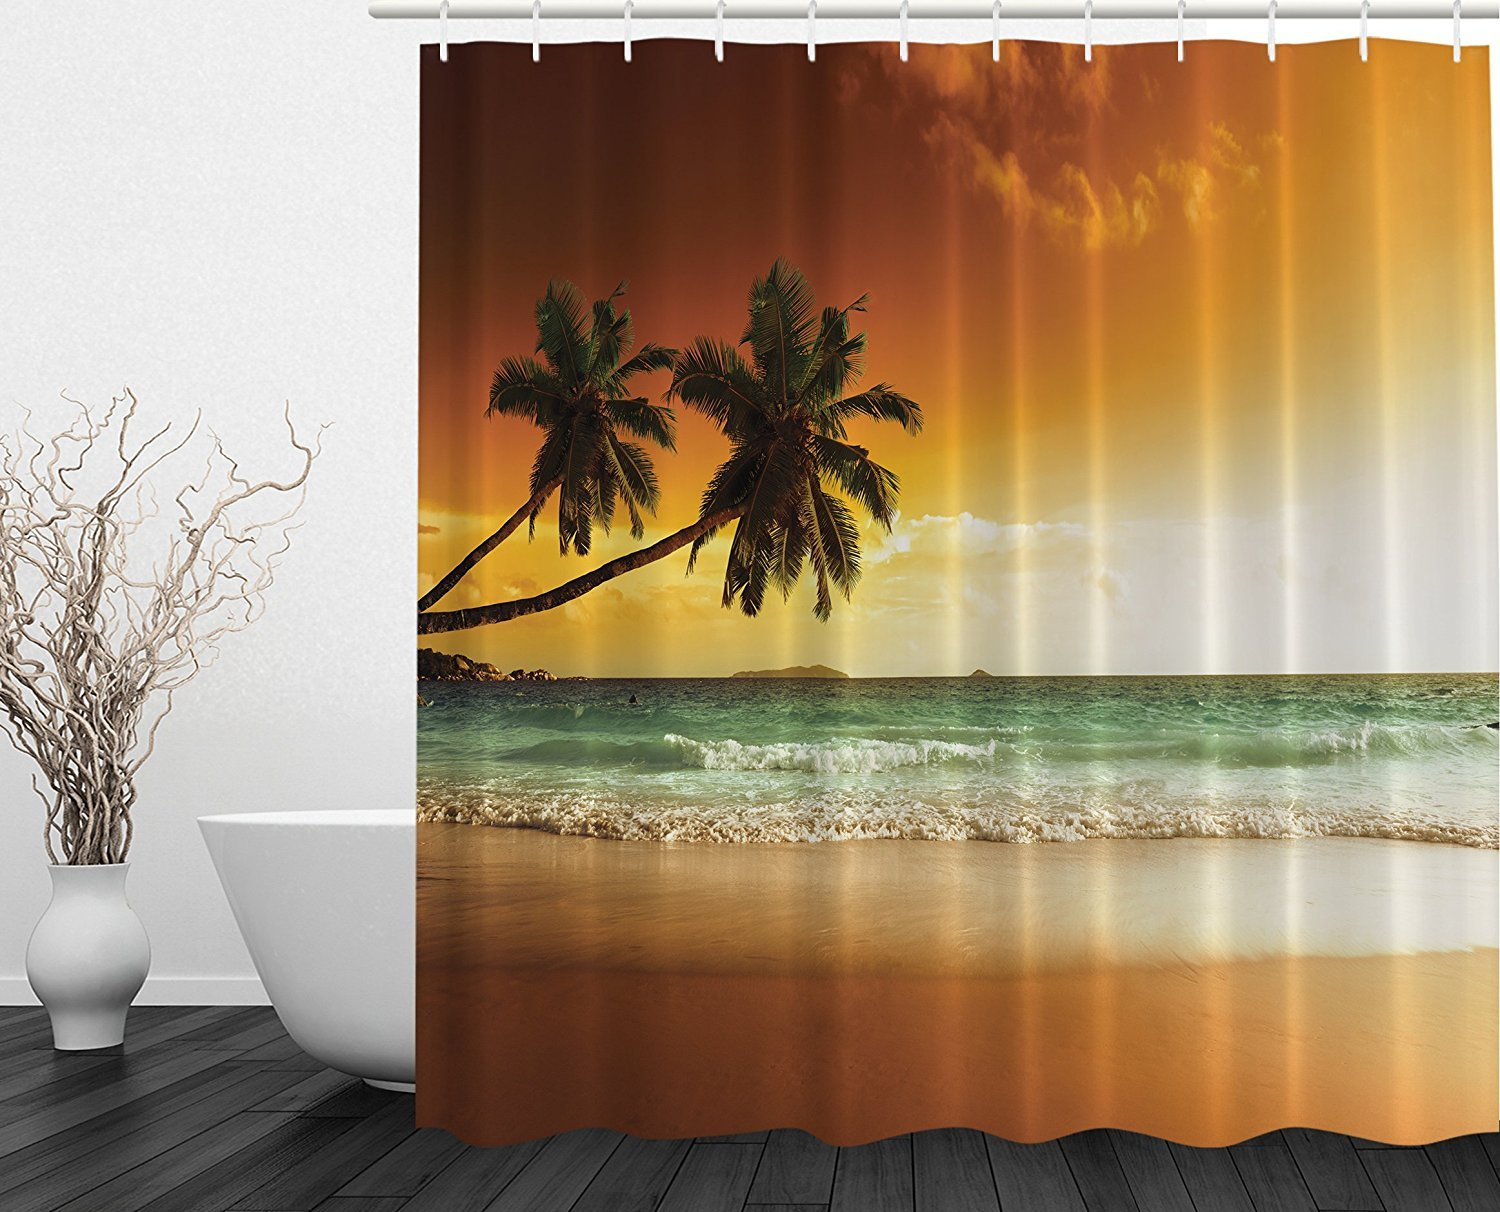 Amazon Ocean Shower Curtain Palms Sunset Digital Print Art Pictures Modern Family Decor Fabric Home Bathroom Accessories Traveler Explorer Leisure View